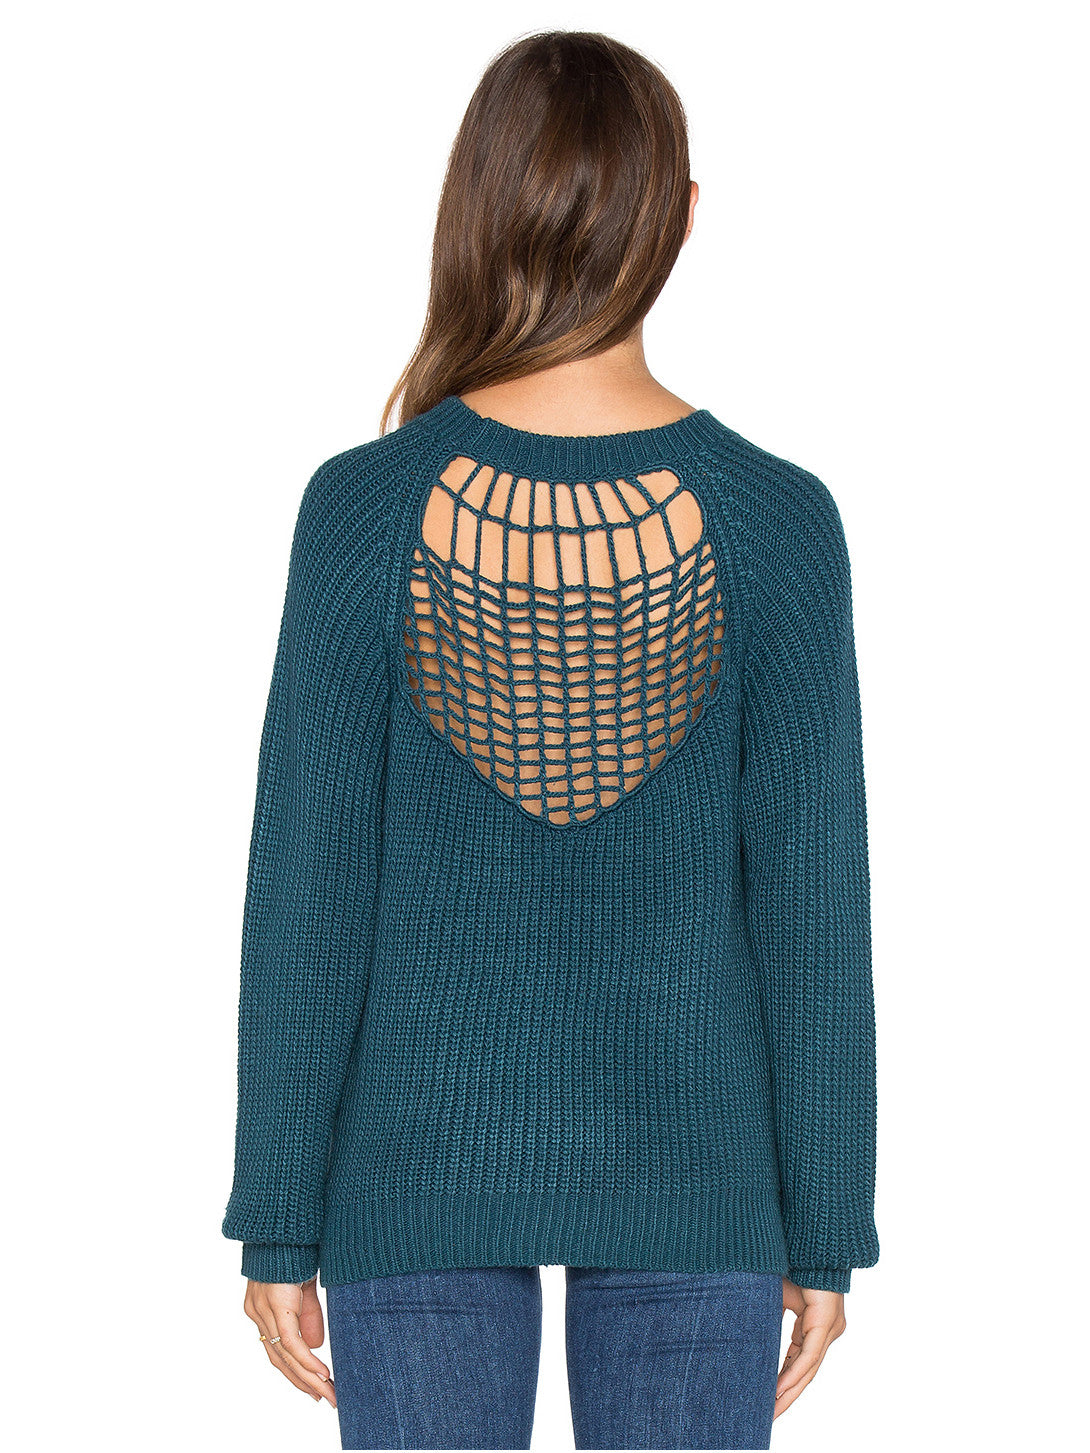 Green Lattice Caged Cut Out Knit Sweater